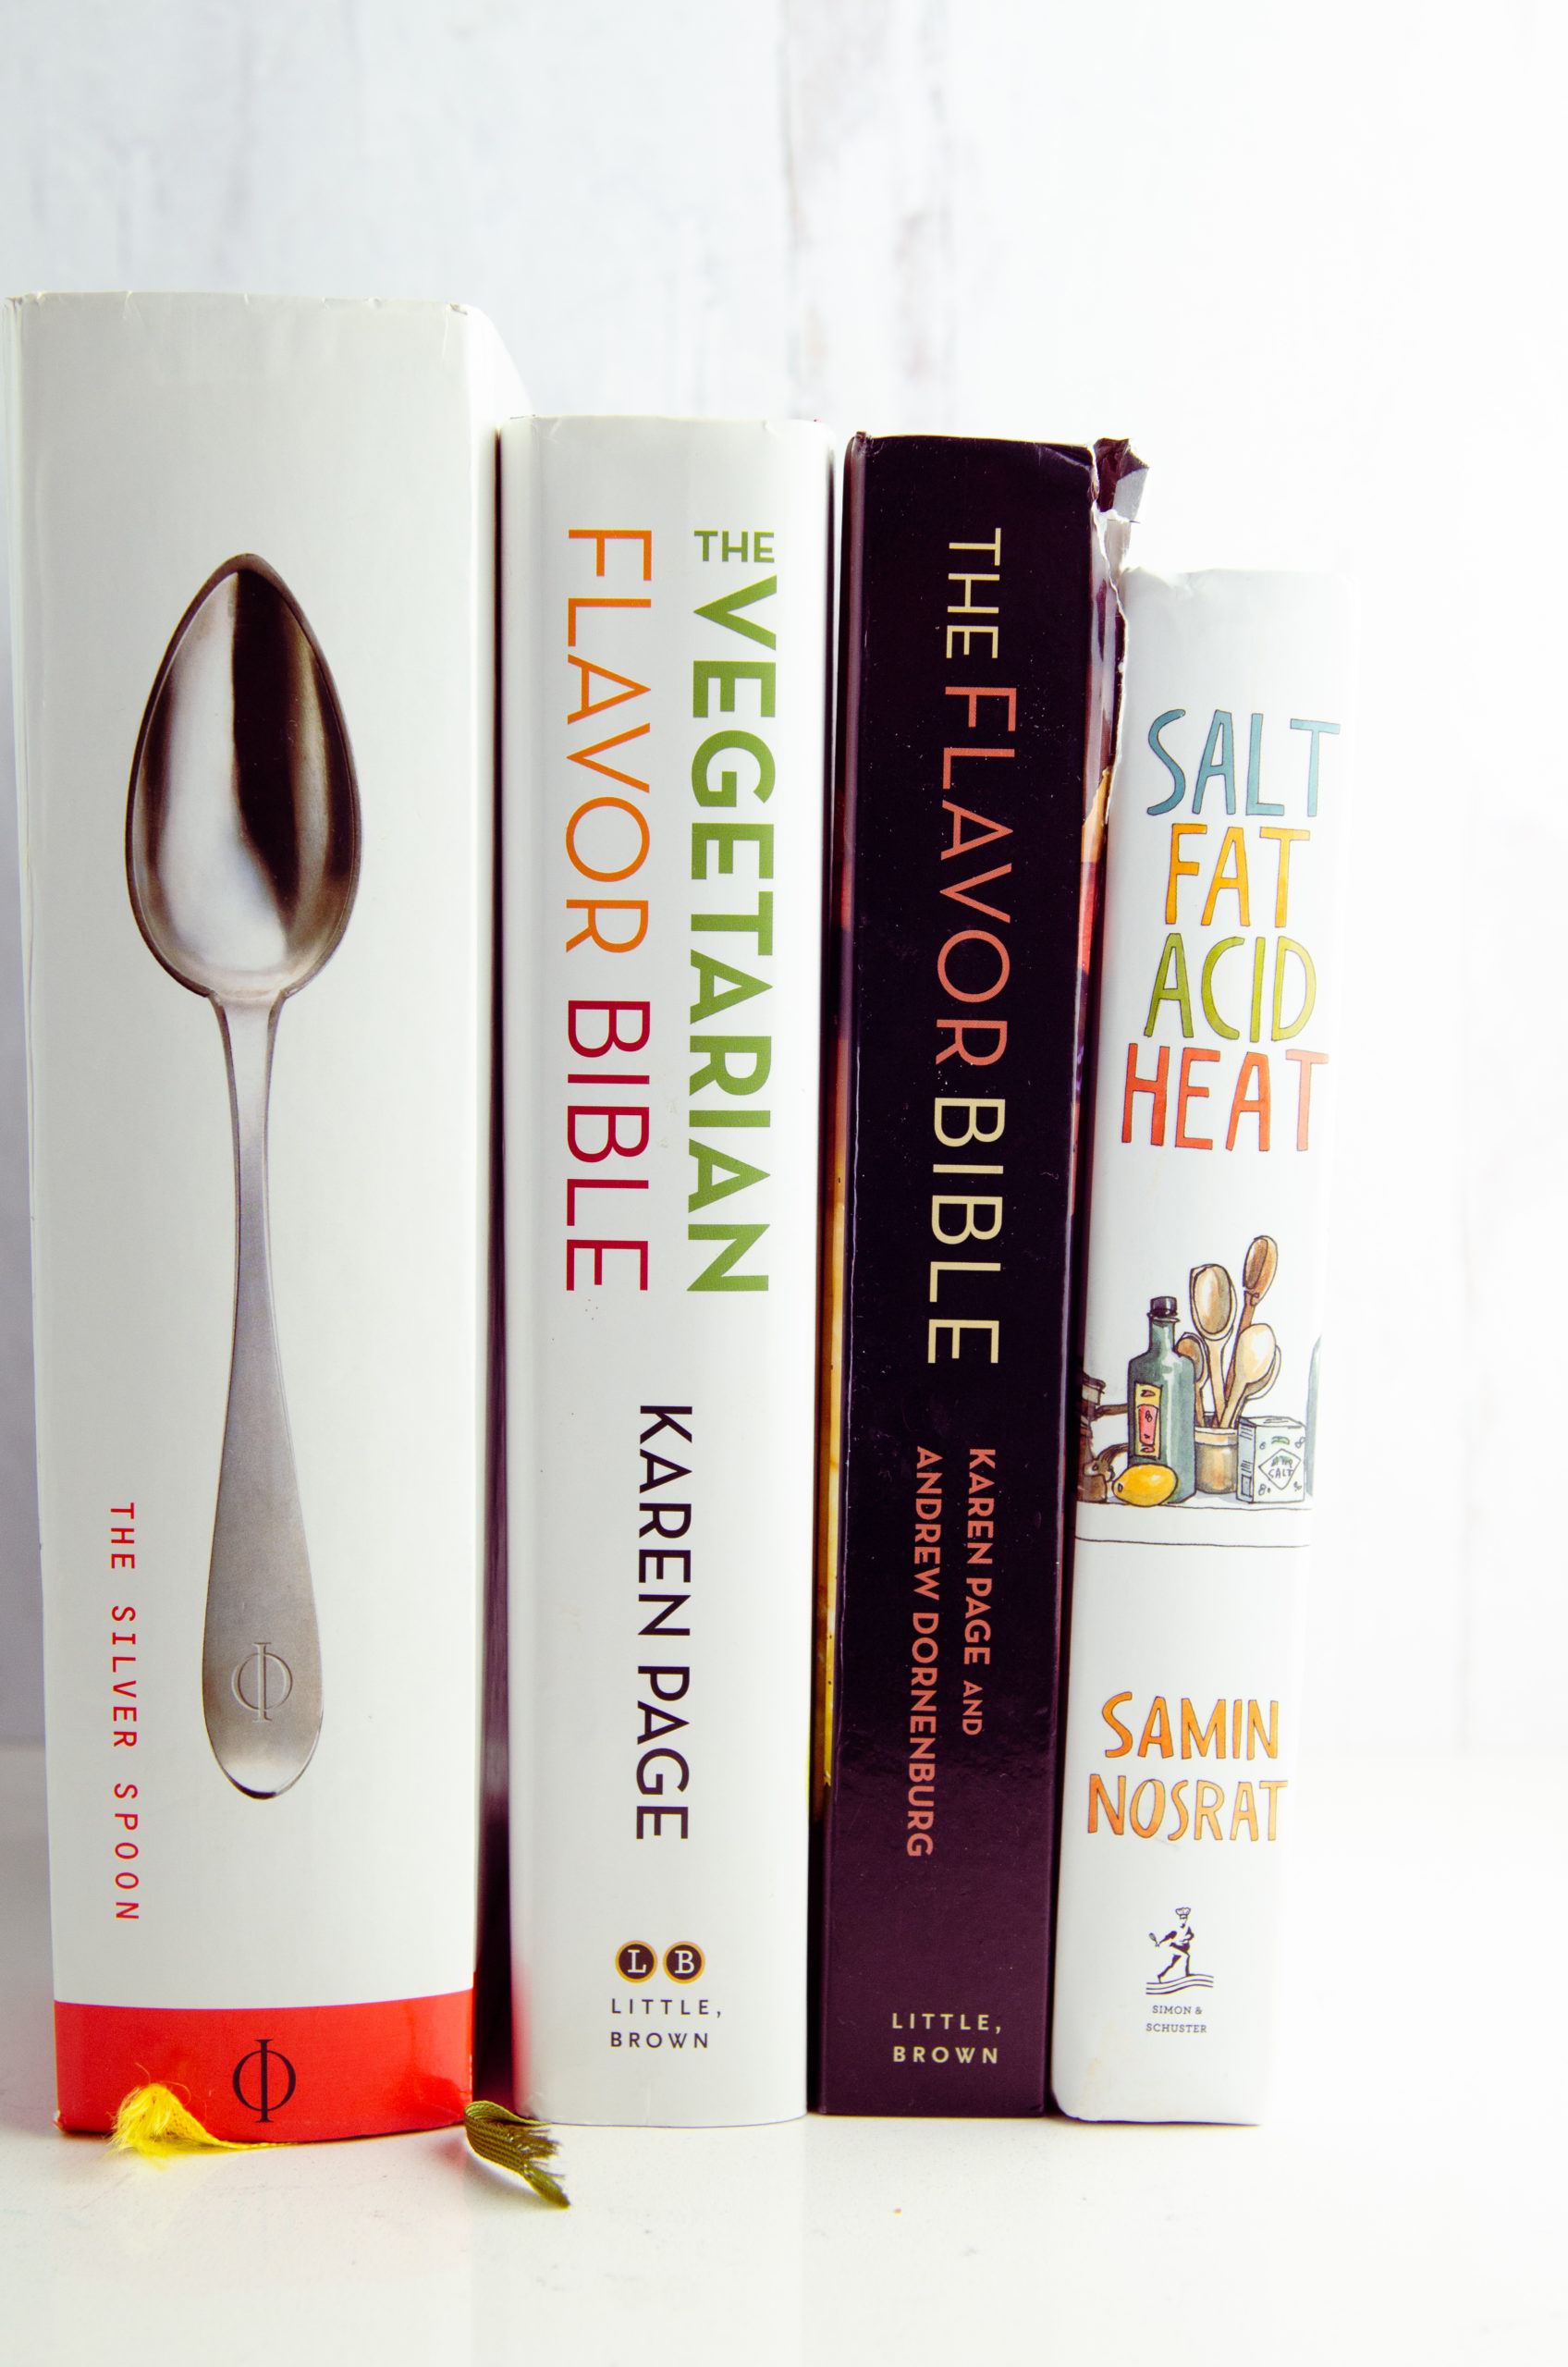 Must have cook books: silver spoon, the vegetarian flavor bible, the flavor bible and salt, fat, acid heat